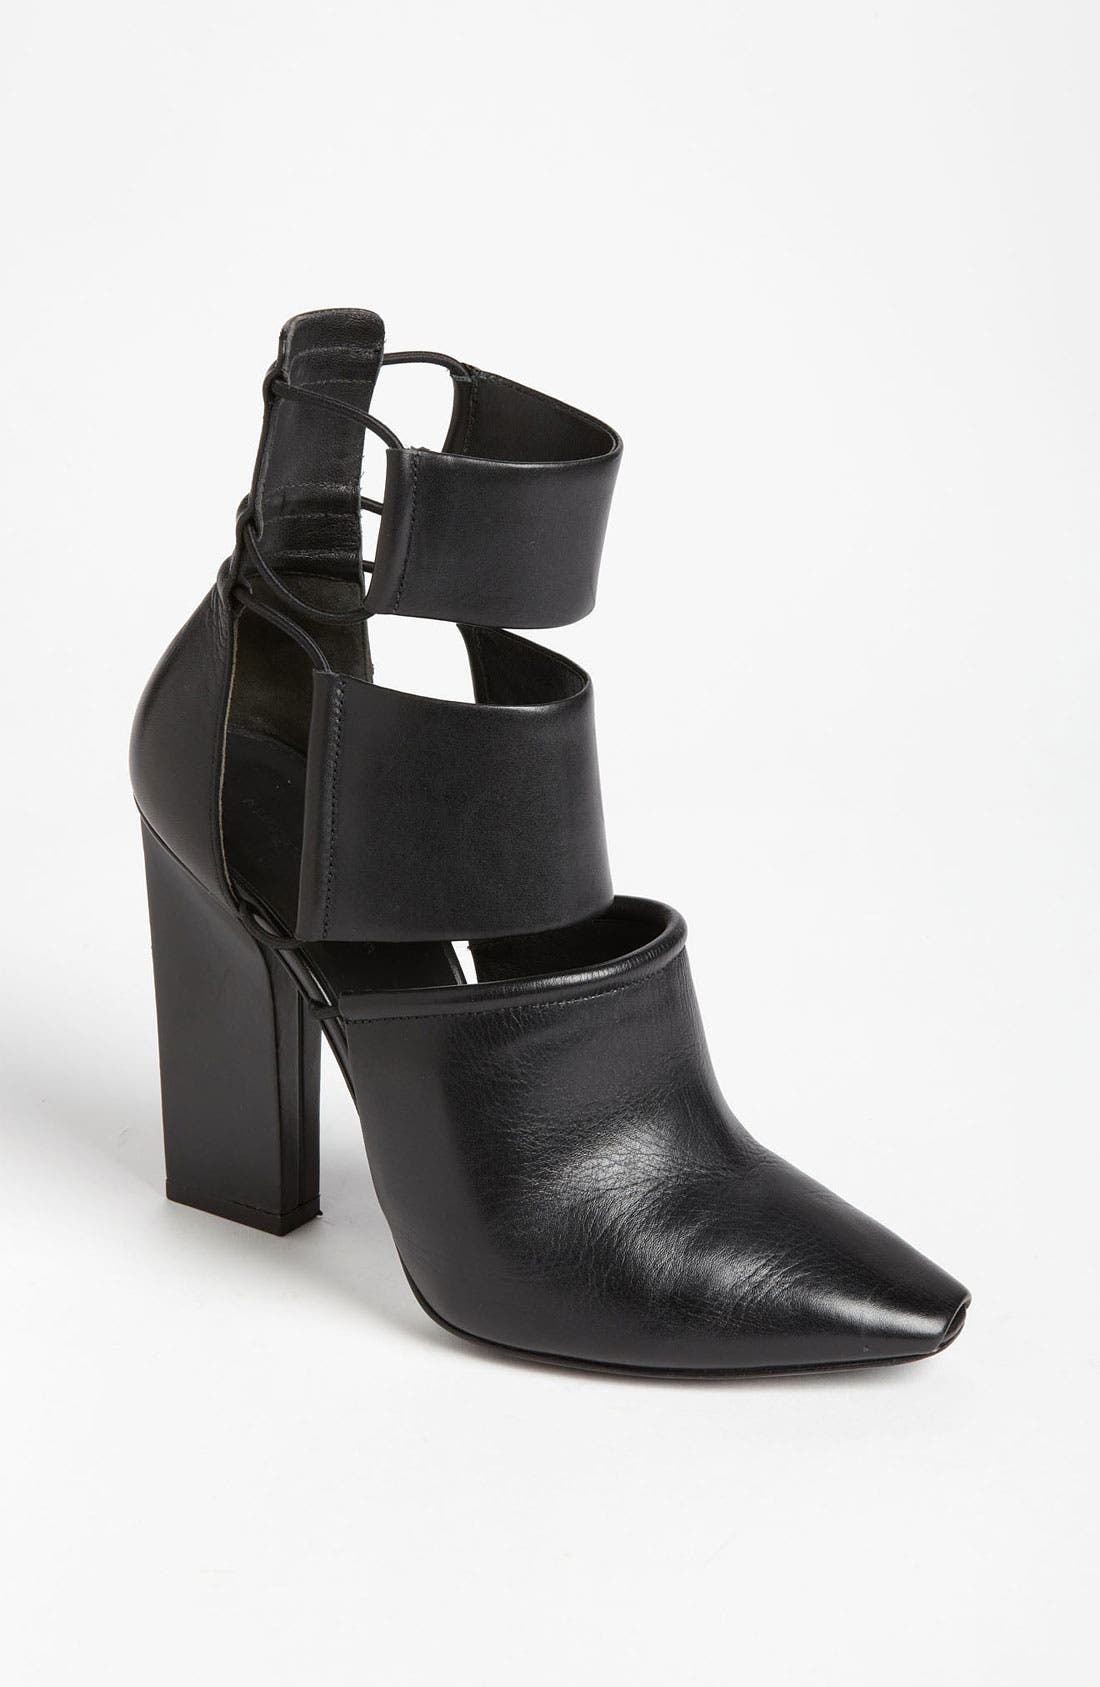 Alternate Image 1 Selected - Alexander Wang 'Mackenzie' Bootie